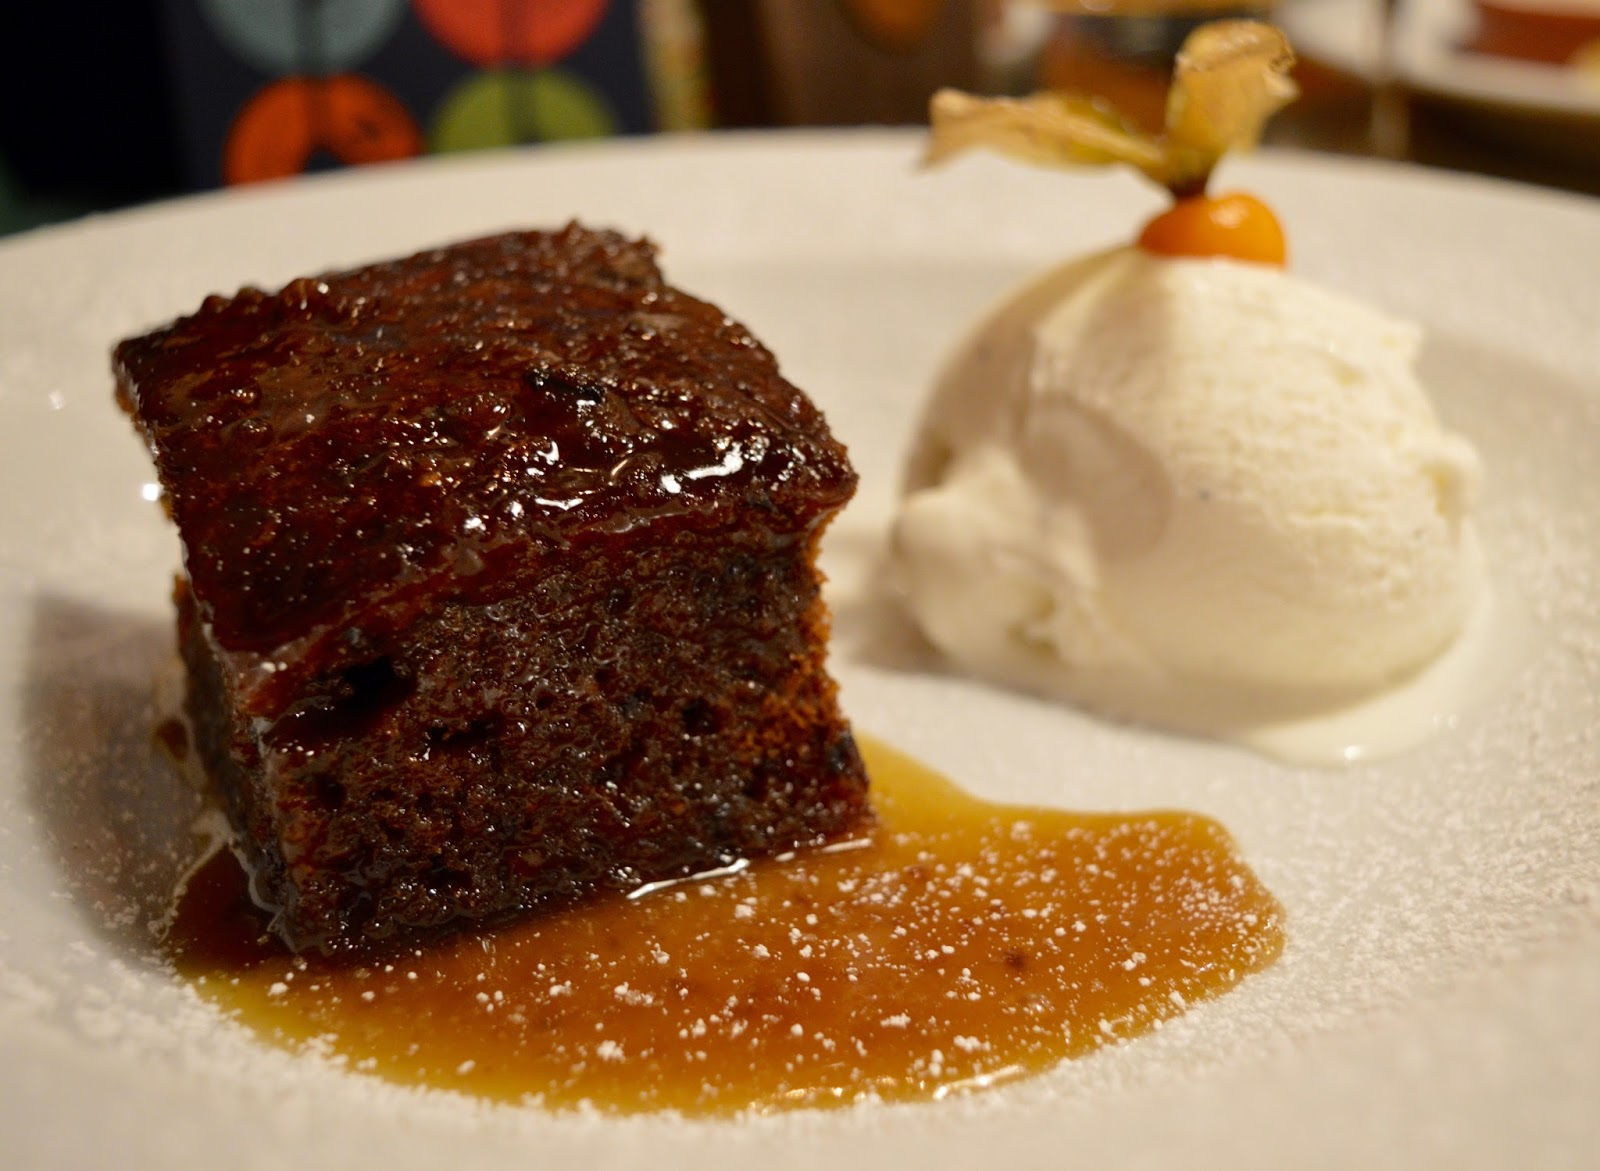 The Kingslodge Inn, Durham | A Review - A lovely budget hotel near the train station and city centre - homemade sticky toffee pudding